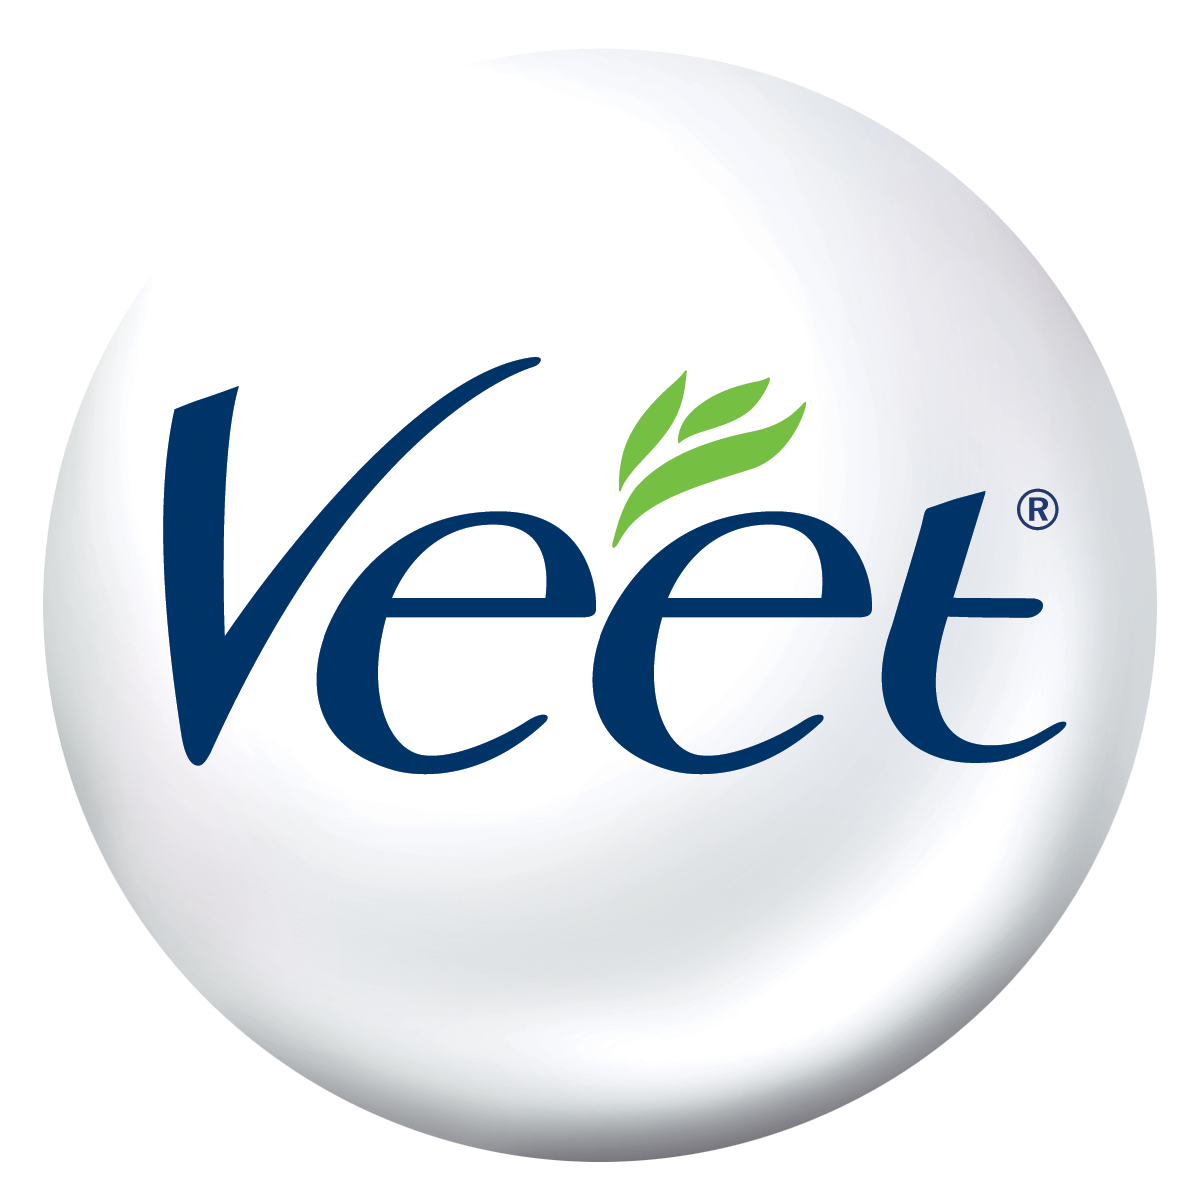 Veet Logo Vector Icon Template Clipart Free Download.